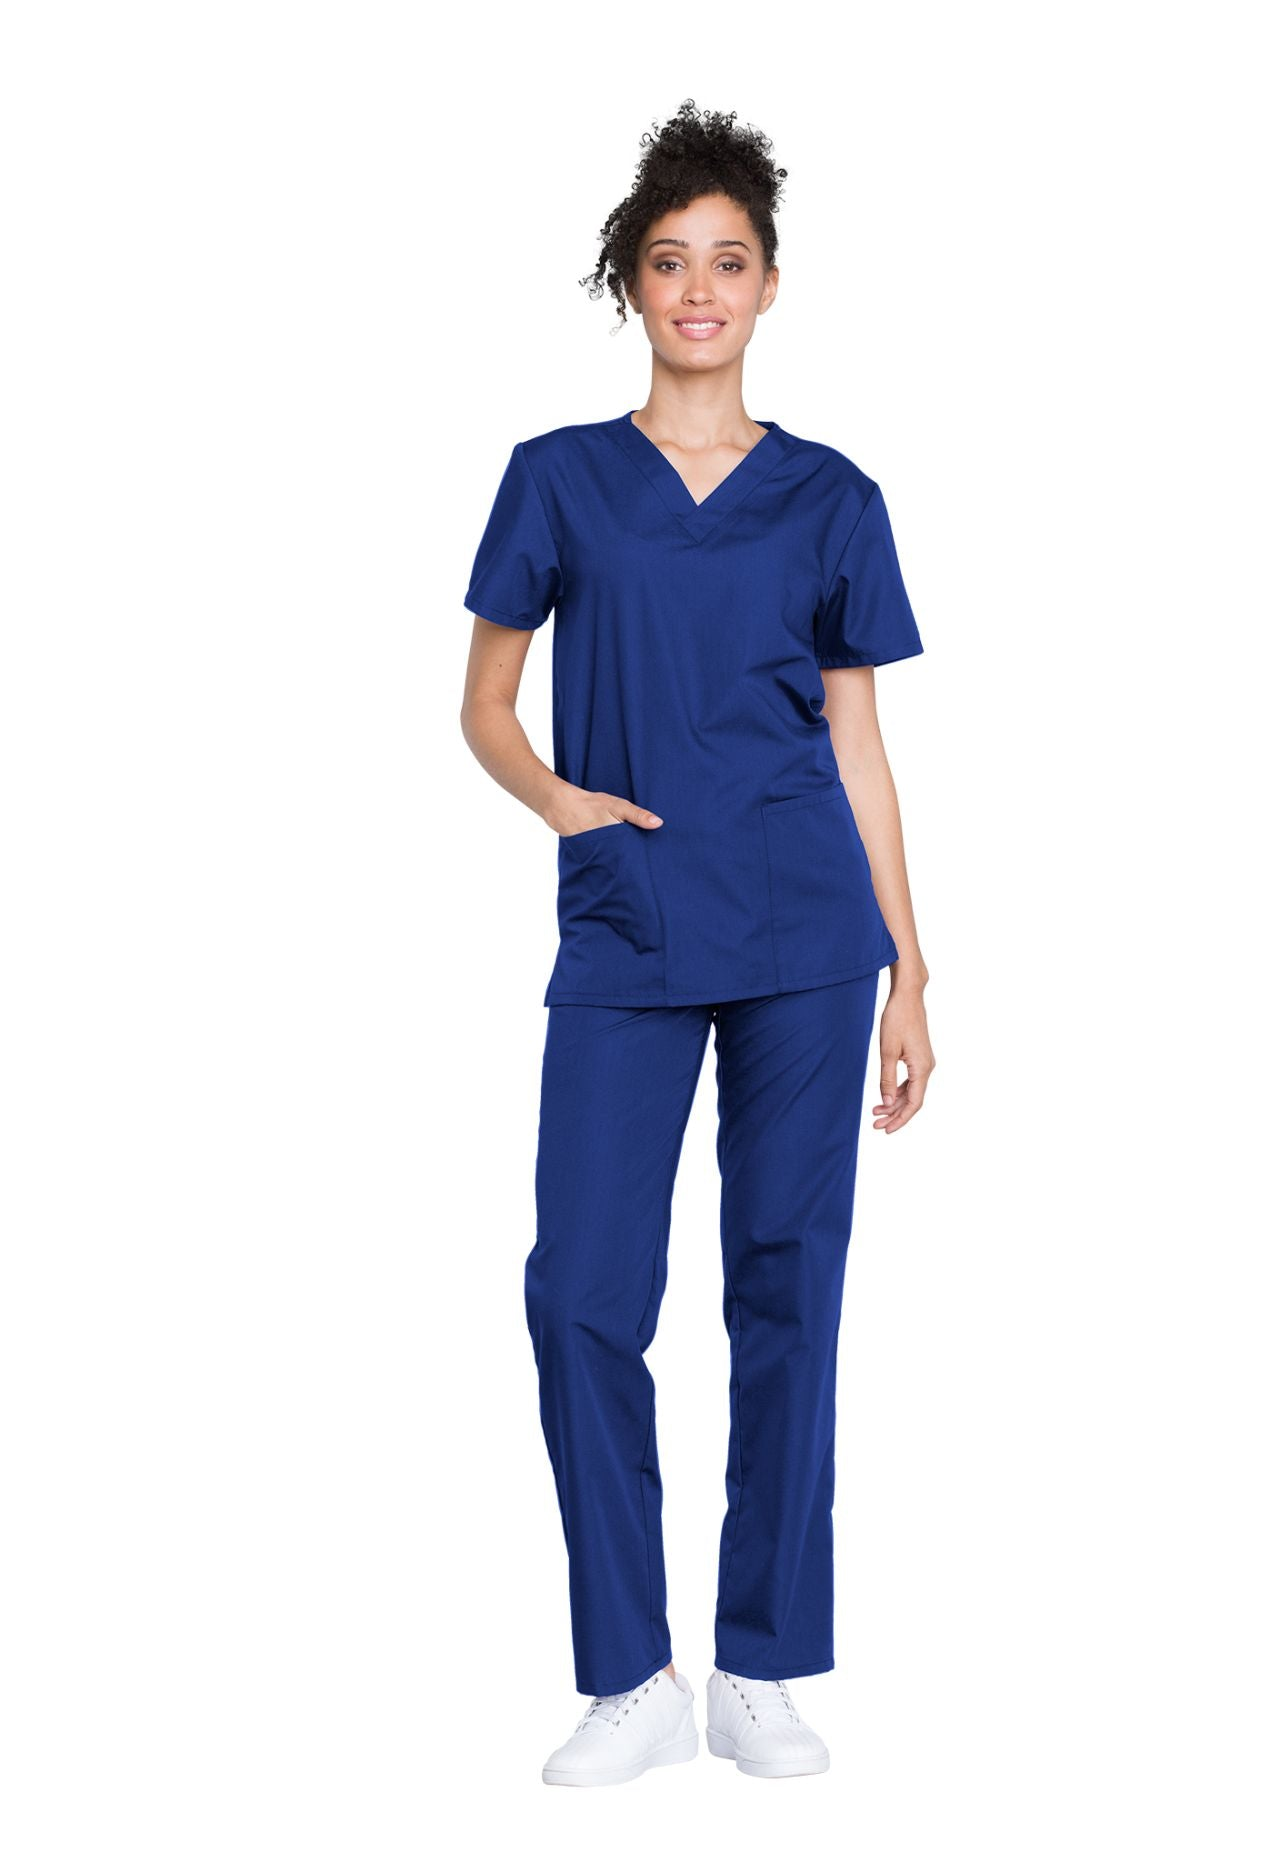 Galaxy Blue - Cherokee Workwear Originals Unisex Top and Pant Set